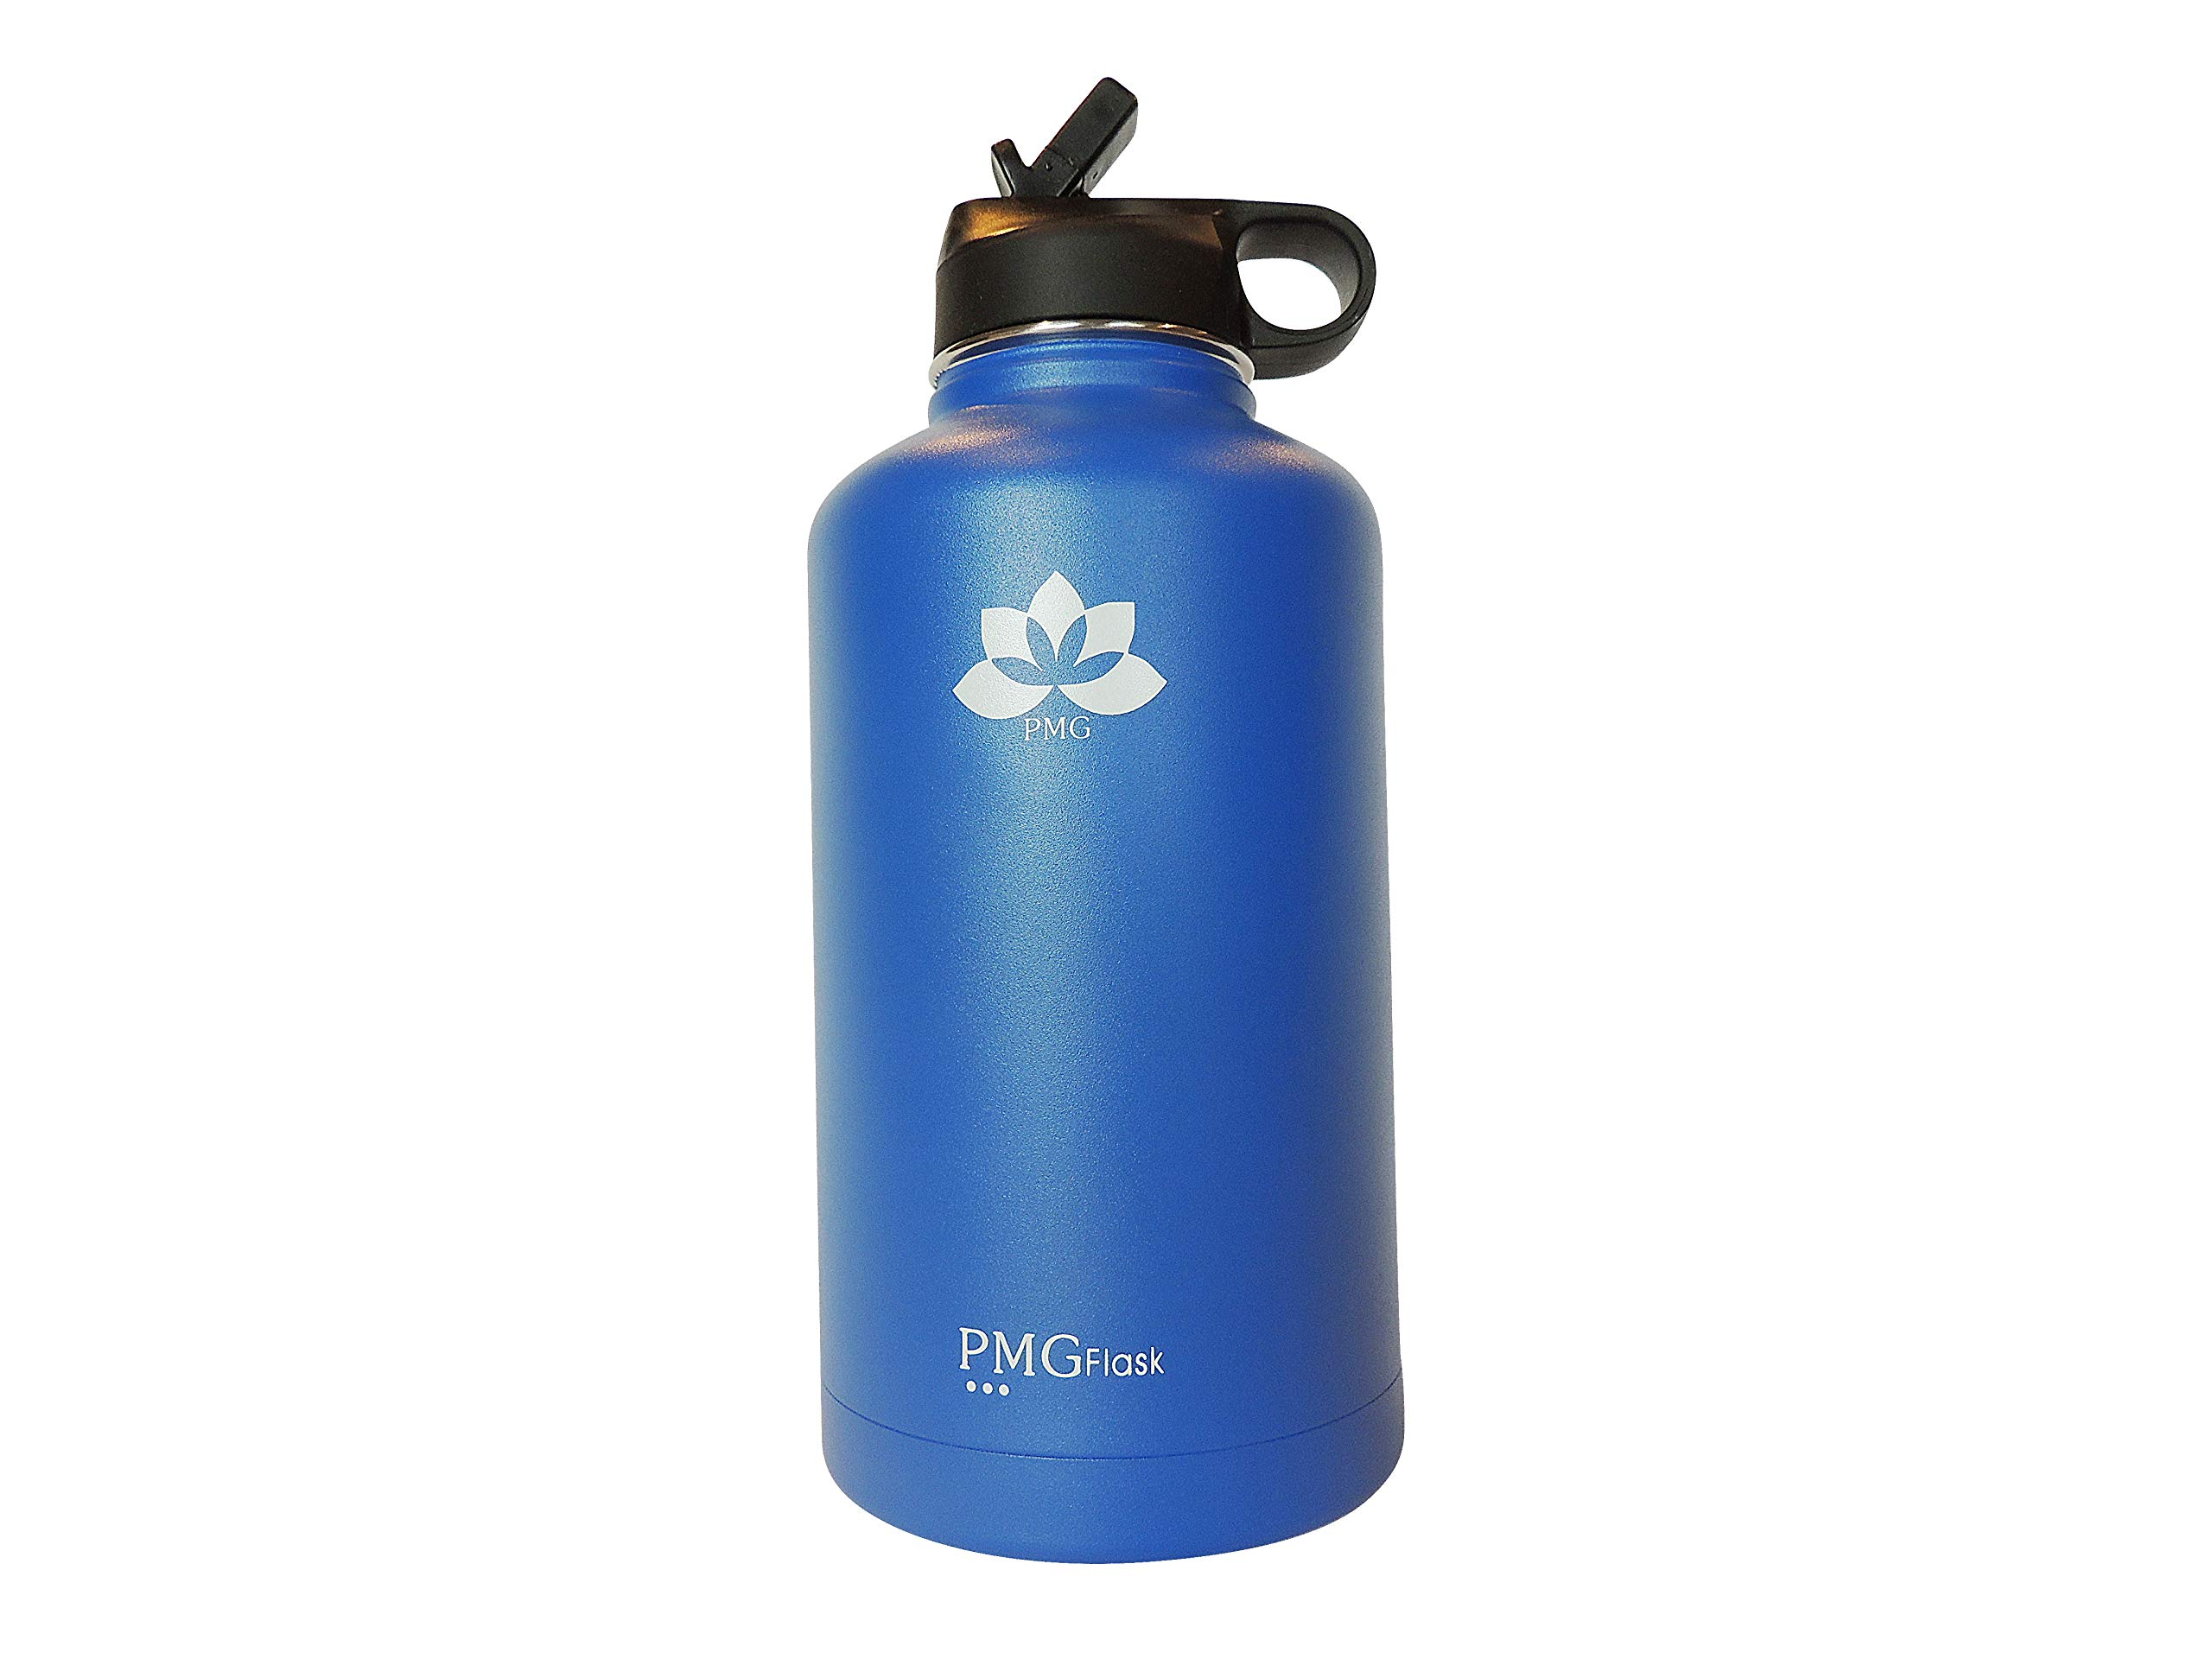 PMG Flask Blue 60oz Wide Mouth Double Wall Vacuum Insulated Stainless Steel Sports Water Bottle with Straw Lid. FDA Approved